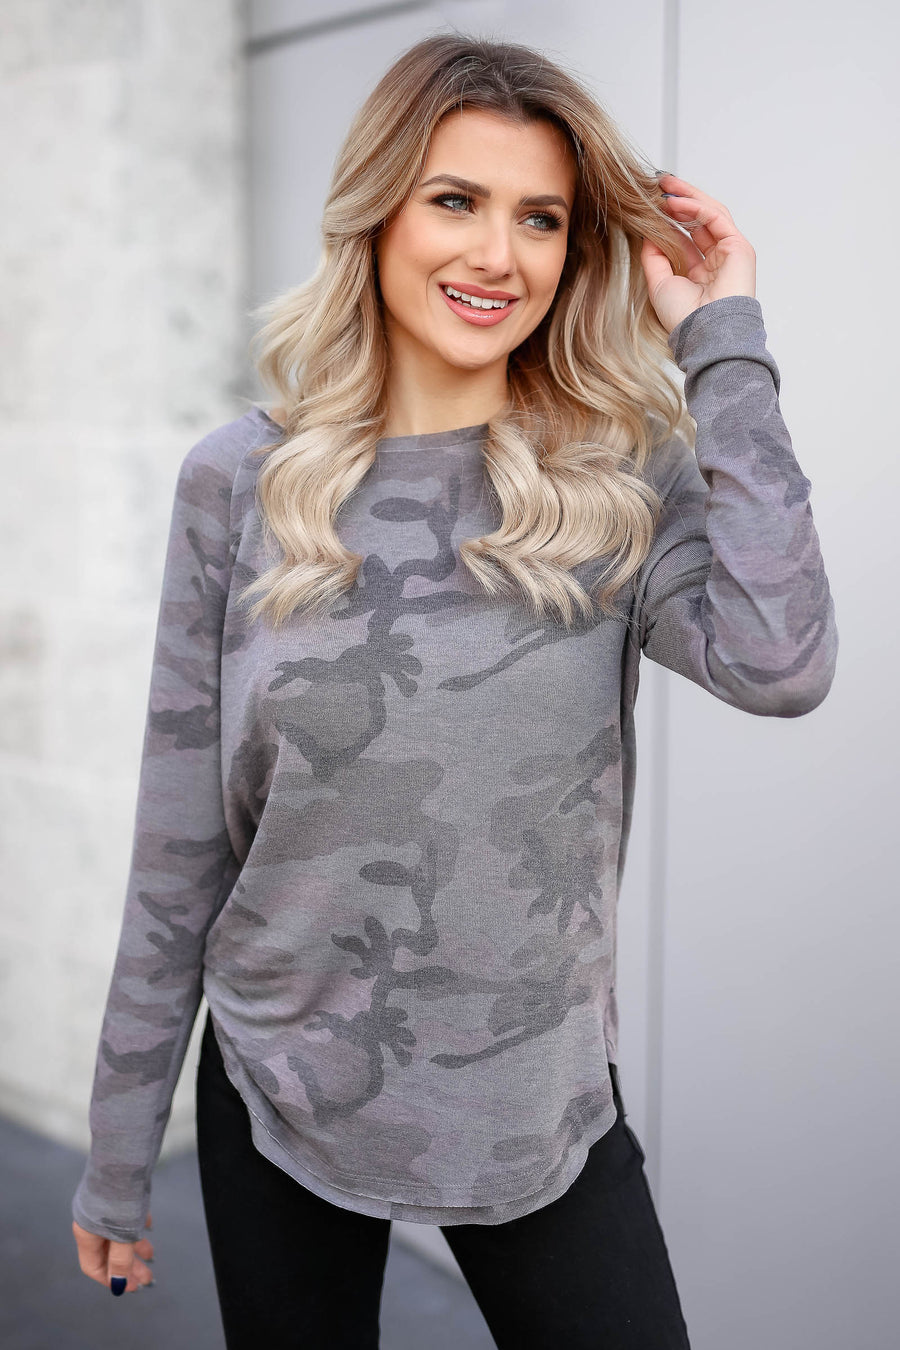 CBRAND Chase Your Dreams Long Sleeve Camo Top - Charcoal closet candy trendy womens round neck print shirt 1